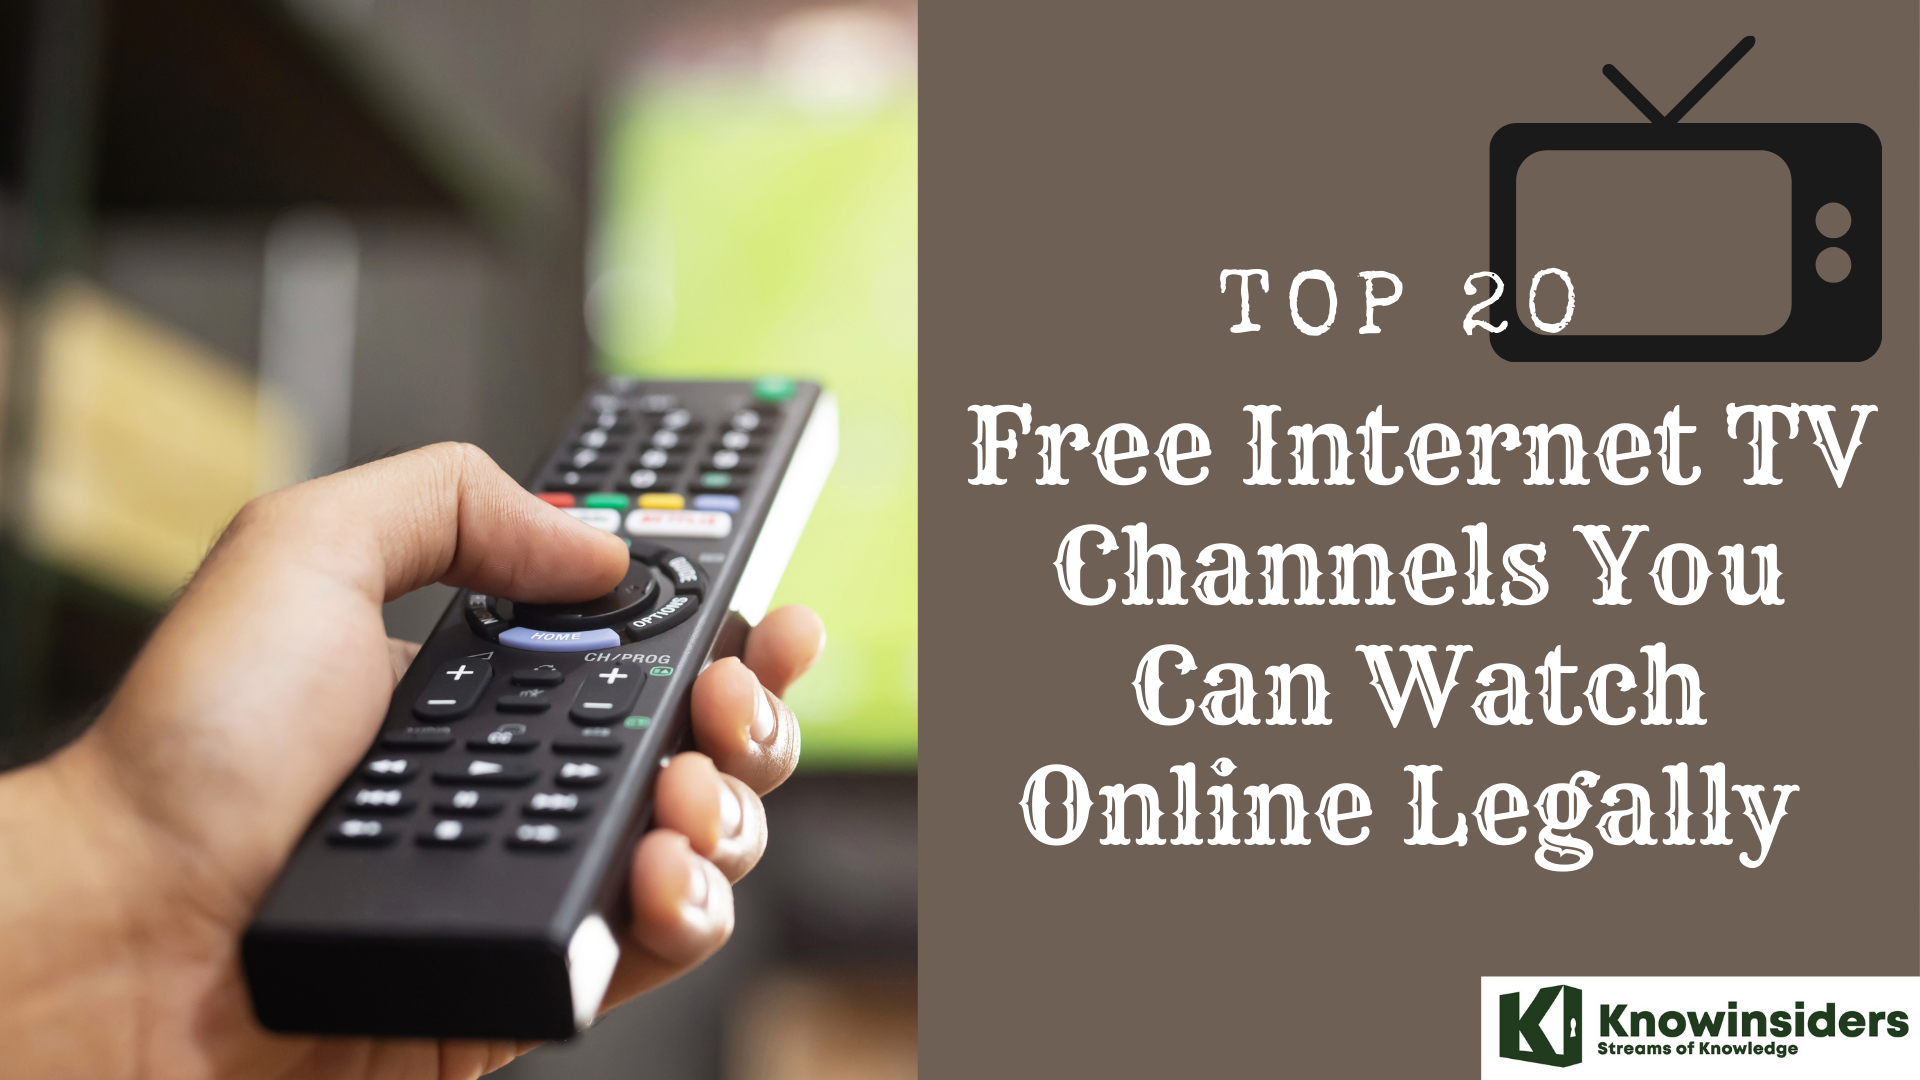 Top 20 Free Internet TV Channels You Can Watch Online Legally